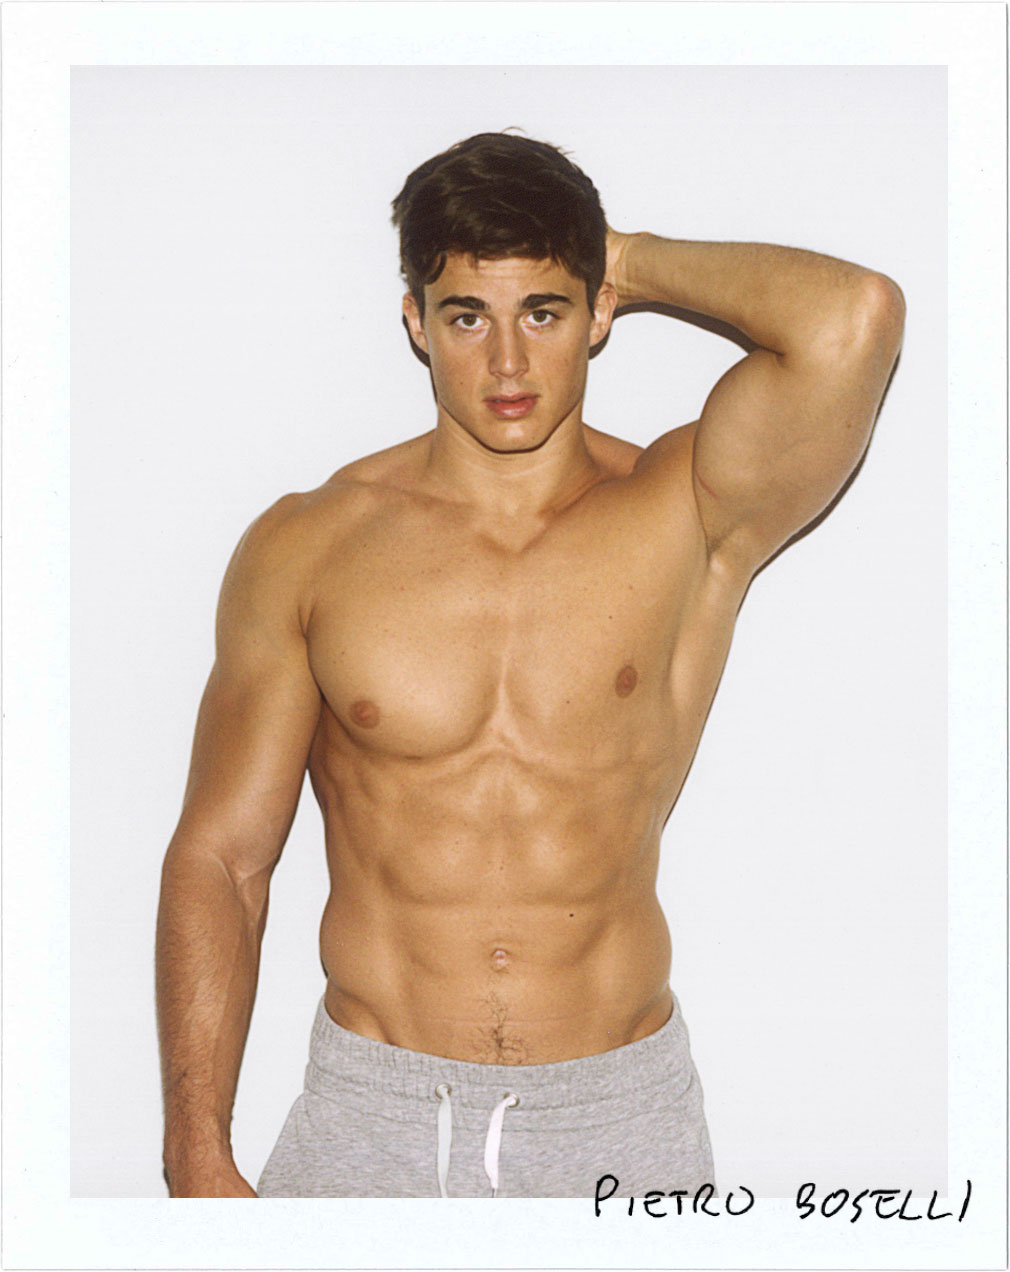 Fashion Model Pietro Boselli Polaroid for Nice People Only by Jane Smith Creative Agency